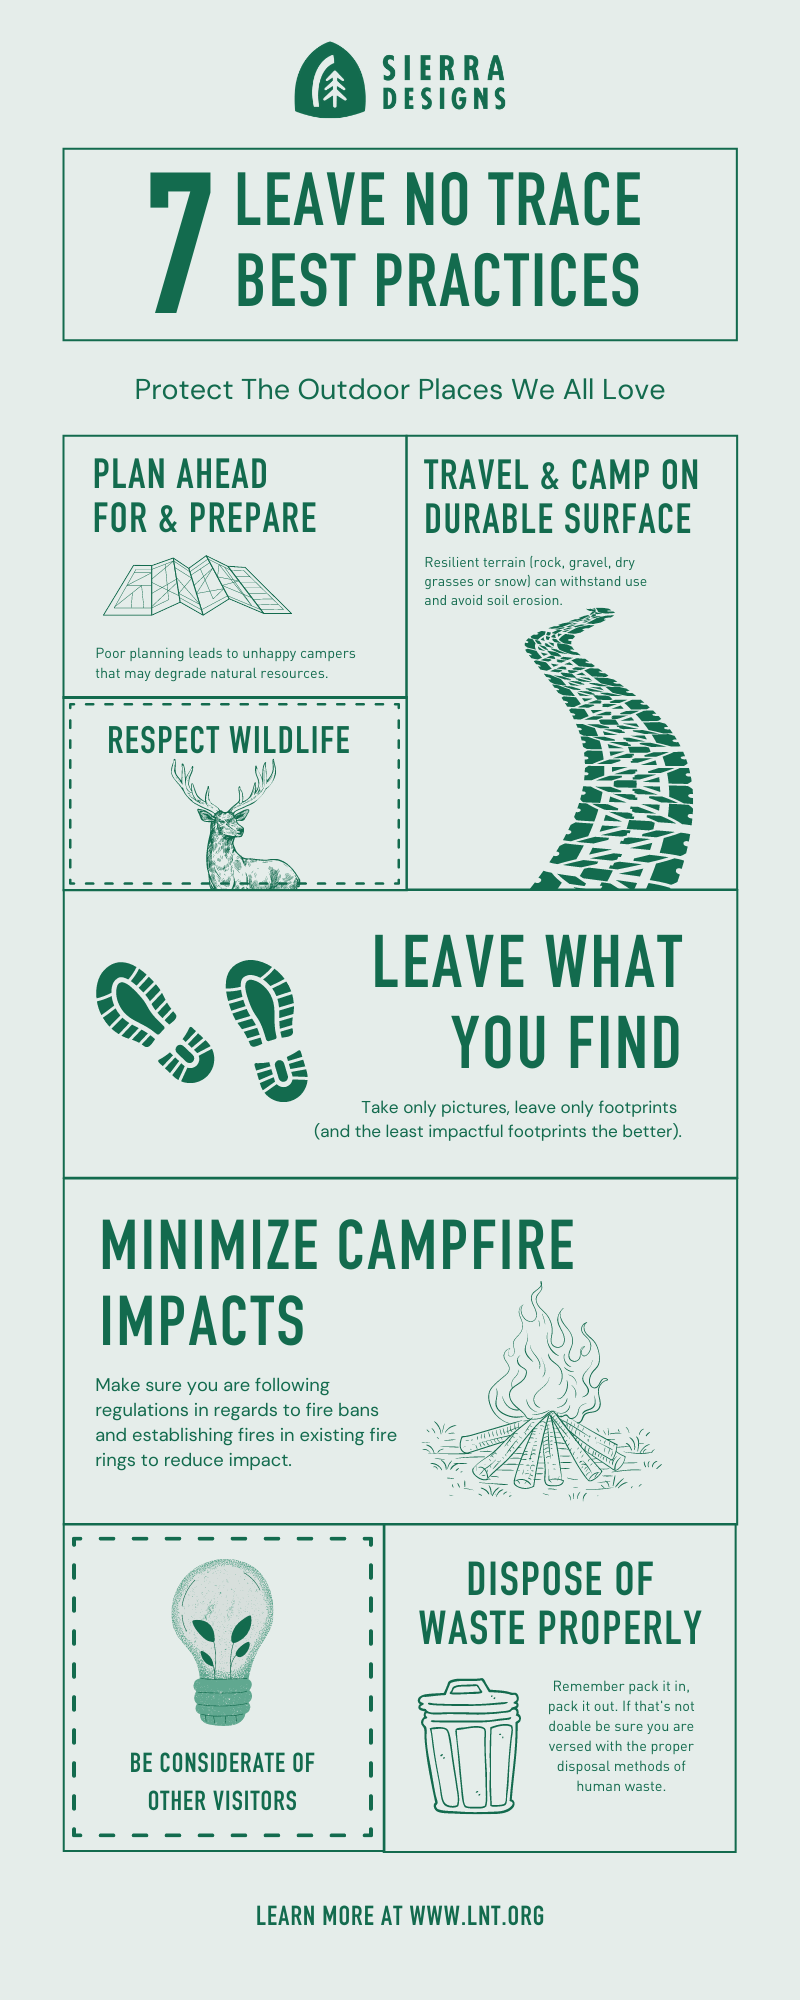 Leave No Trace Best Practices